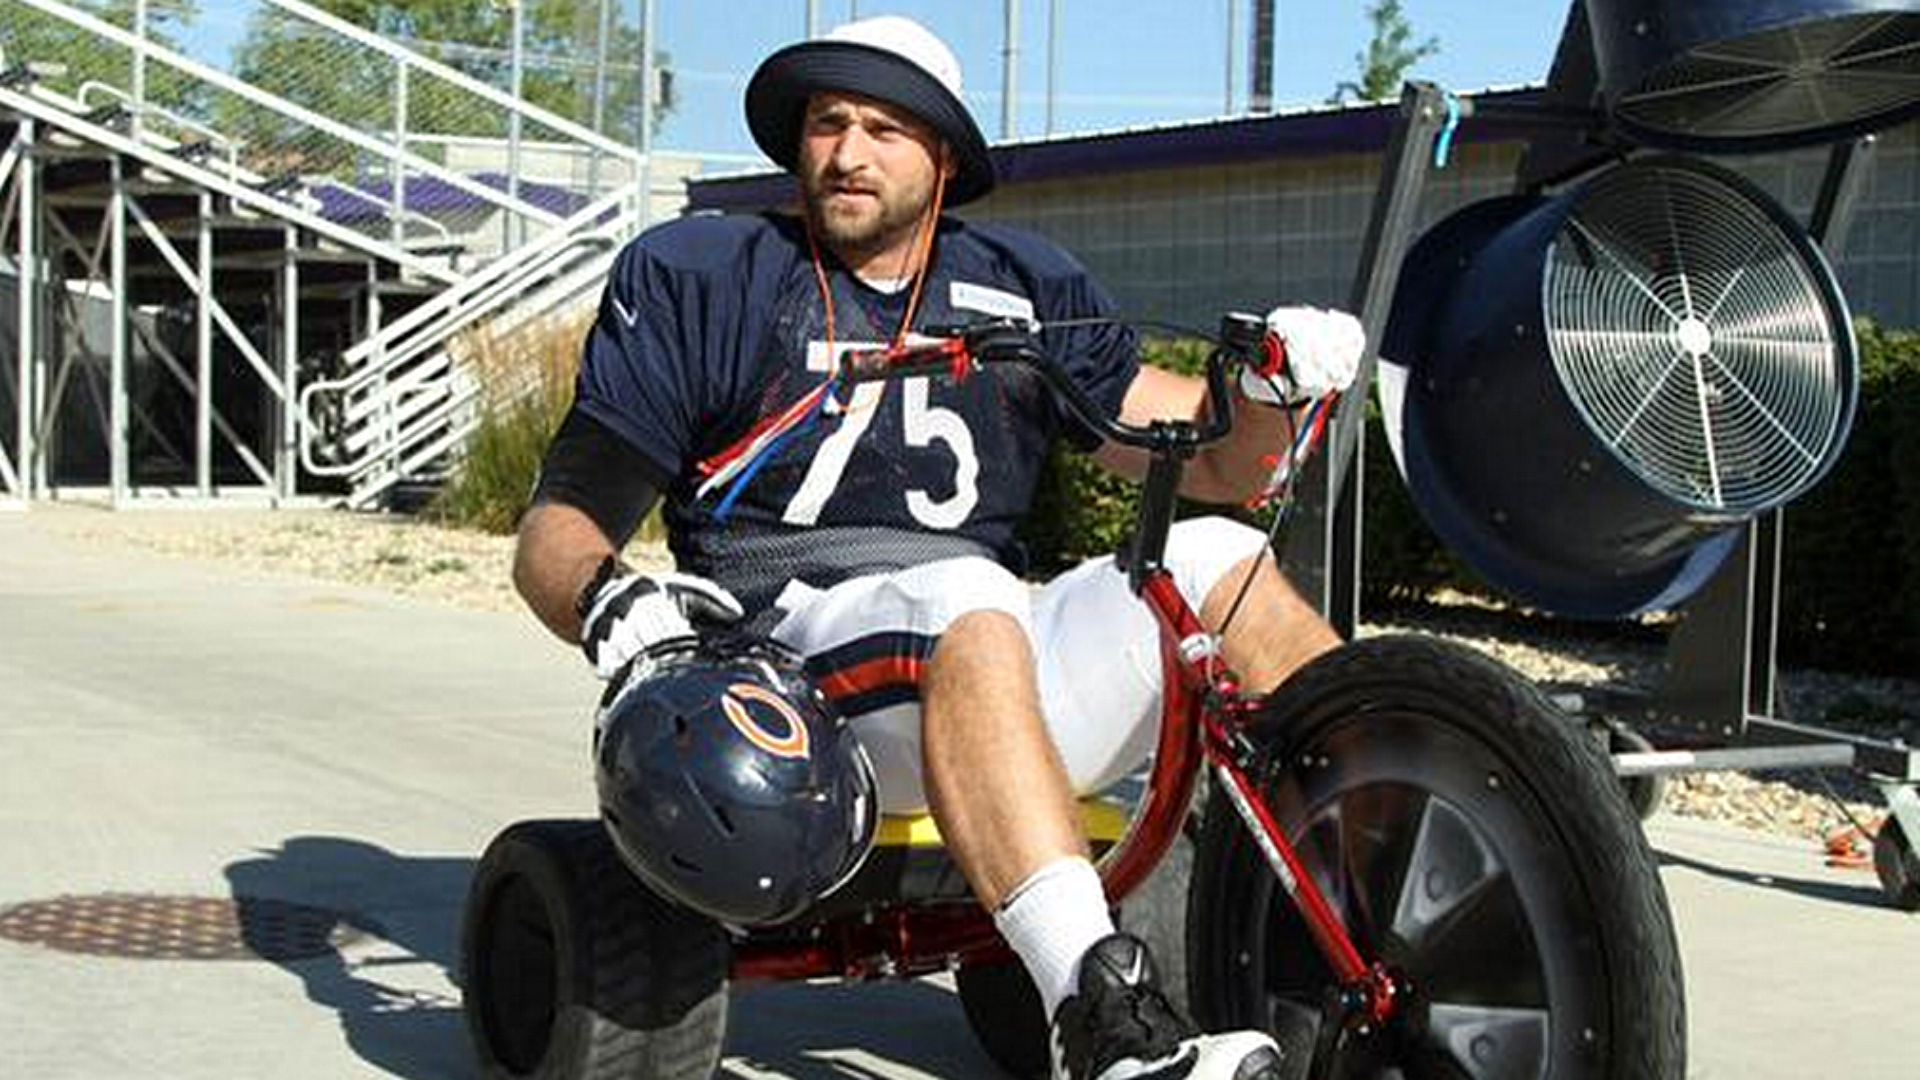 Kyle Long rolls up to practice on Big Wheel, sasses haters